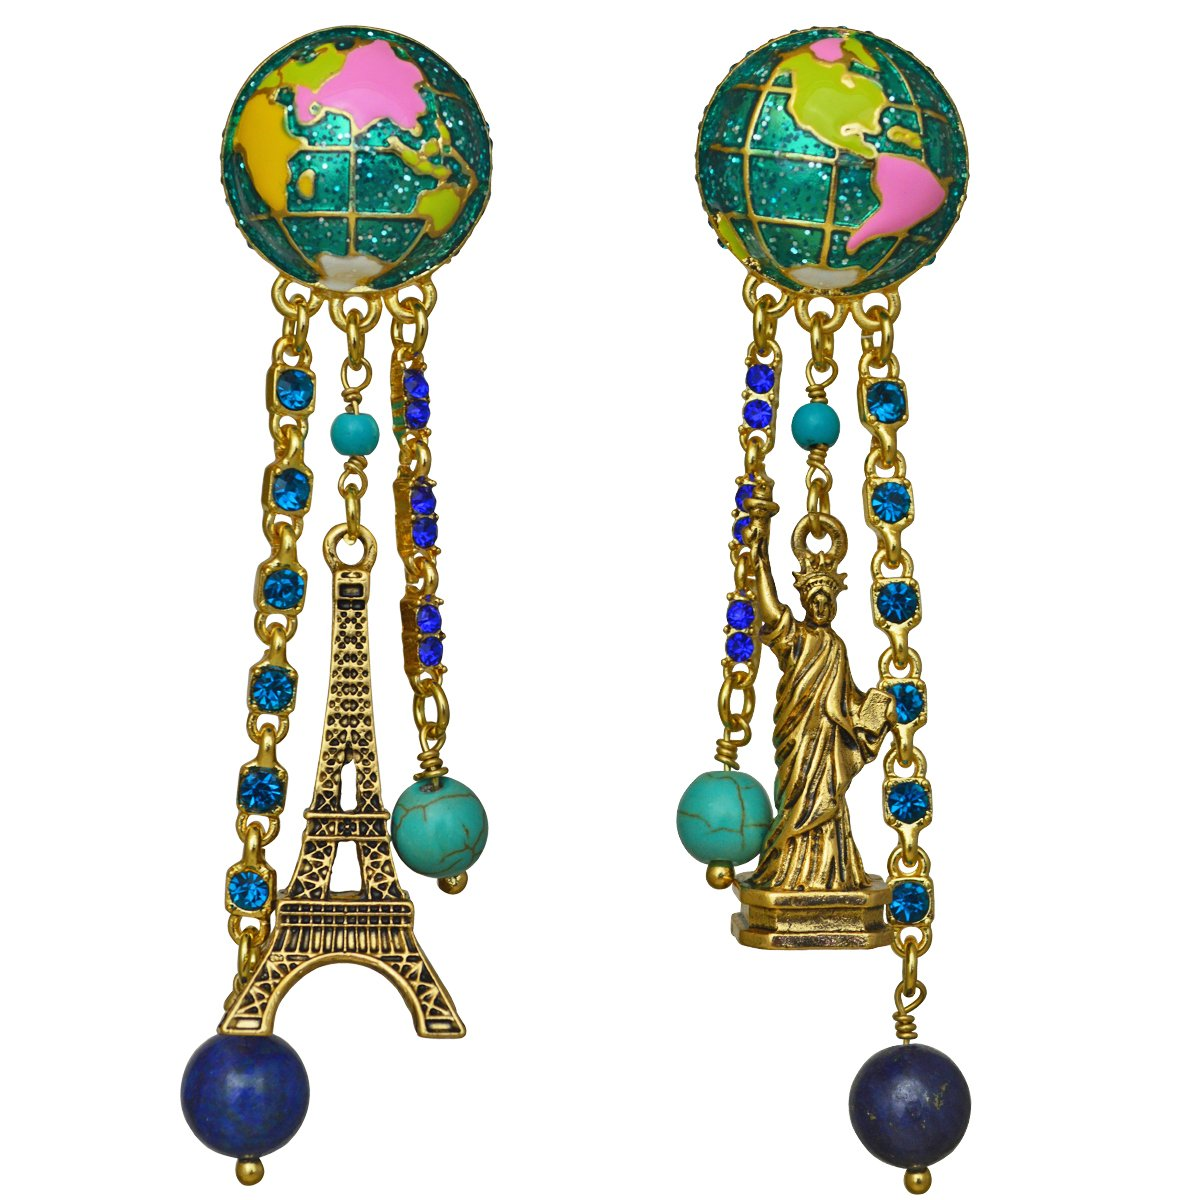 Ritzy Couture We Are the World Travel Eiffel Tower & Statue of Liberty Earrings, Goldtone (Post)